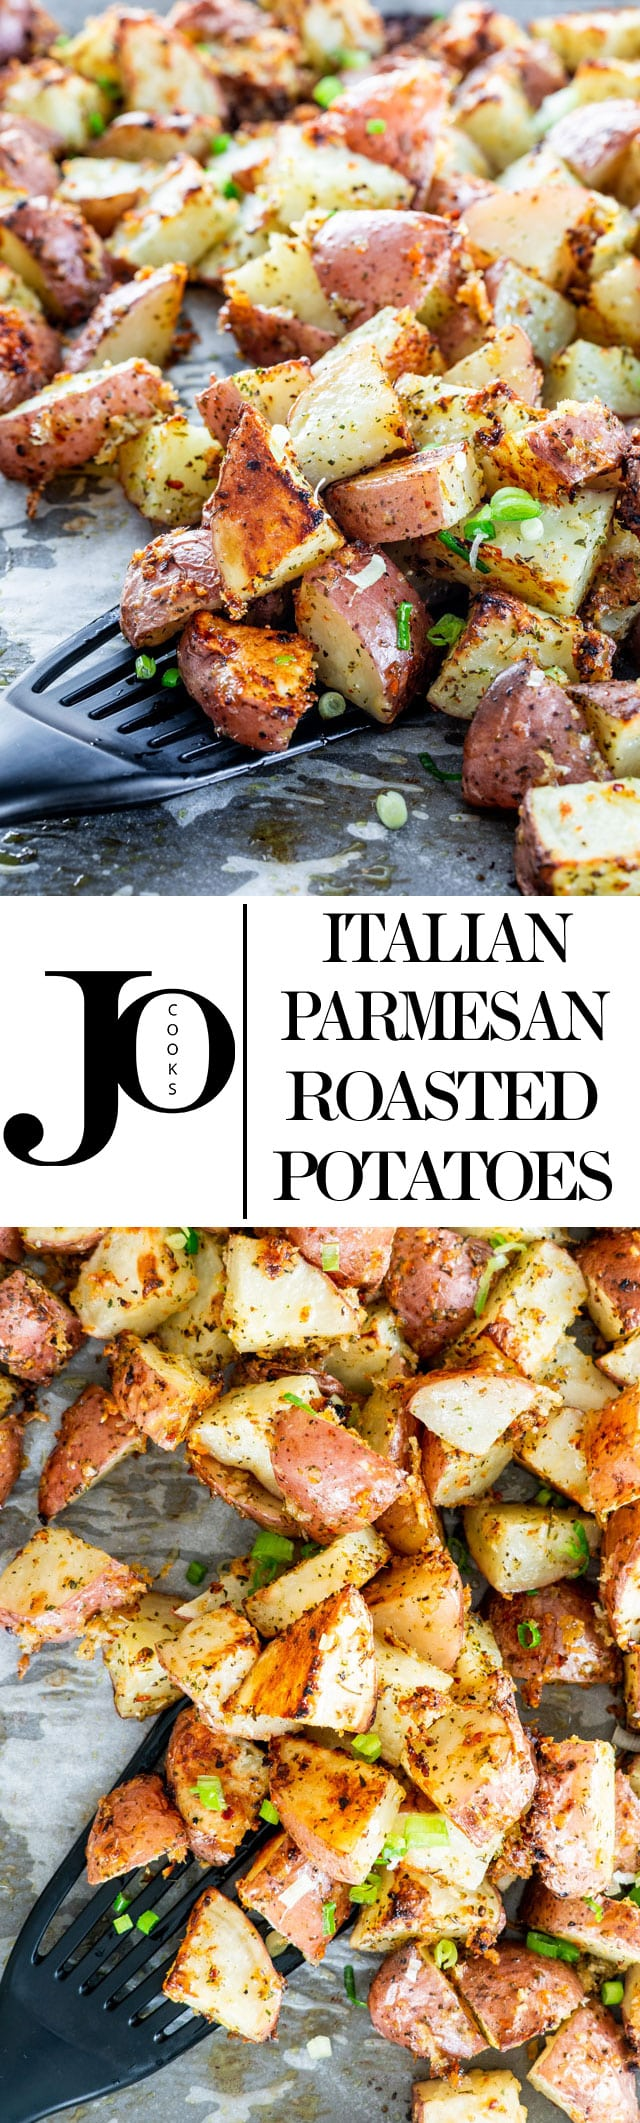 These Italian Parmesan Roasted Potatoes are so full of flavor and deliciousness, perfectly crispy and cheesy! They truly are the perfect side dish! All you have to do is enjoy them. #roastedpotatoes